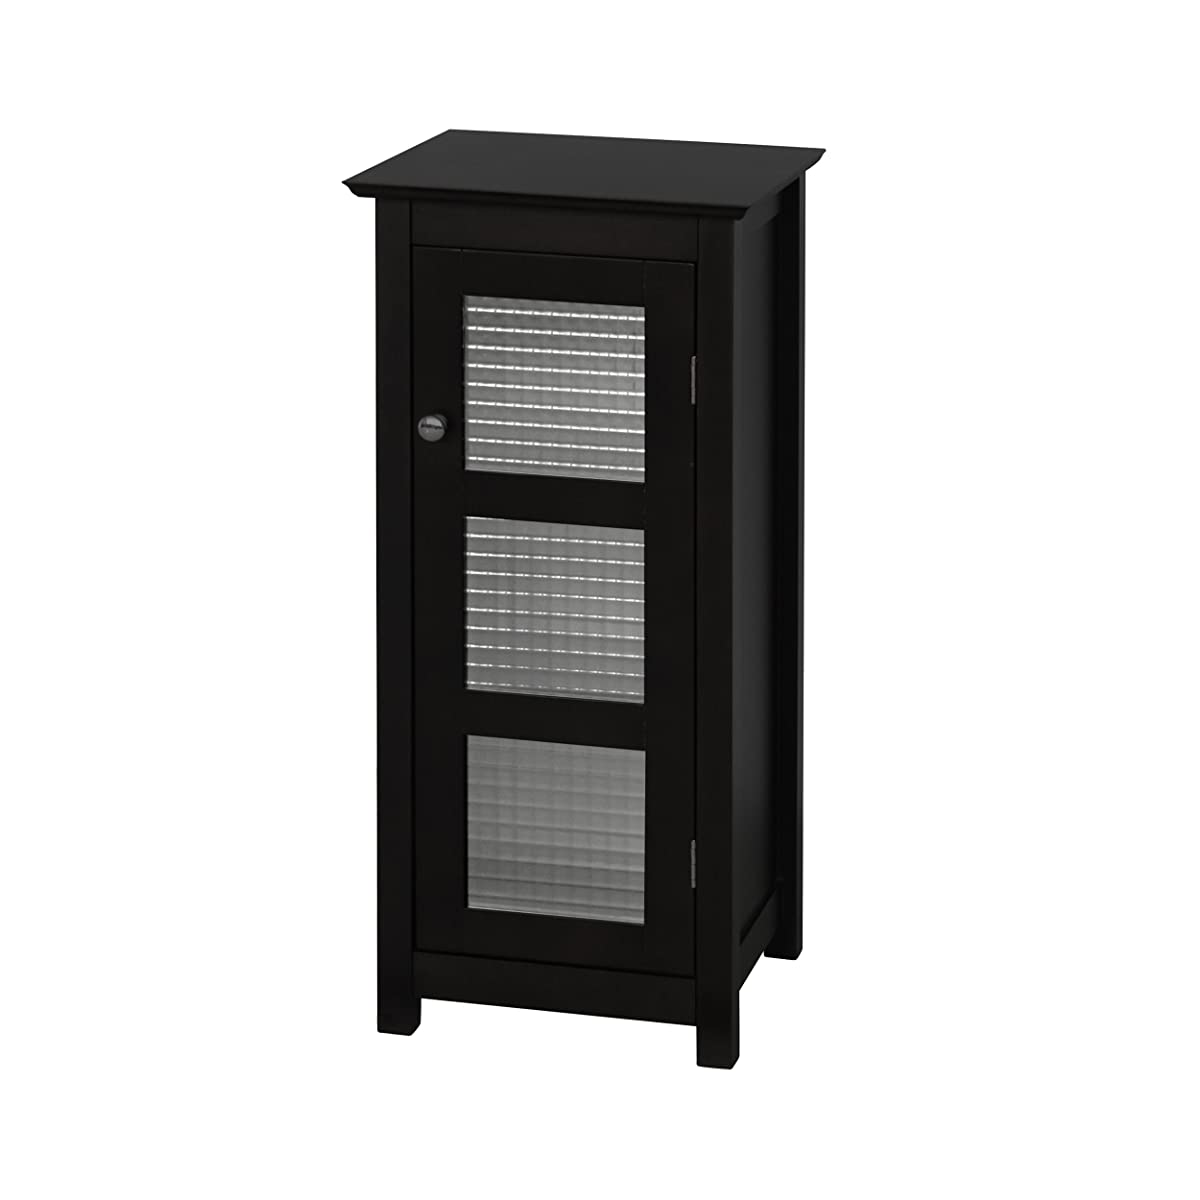 Elegant Home Fashions Chesterfield Collection Shelved Floor Cabinet with Glass-Paneled Door, Espresso